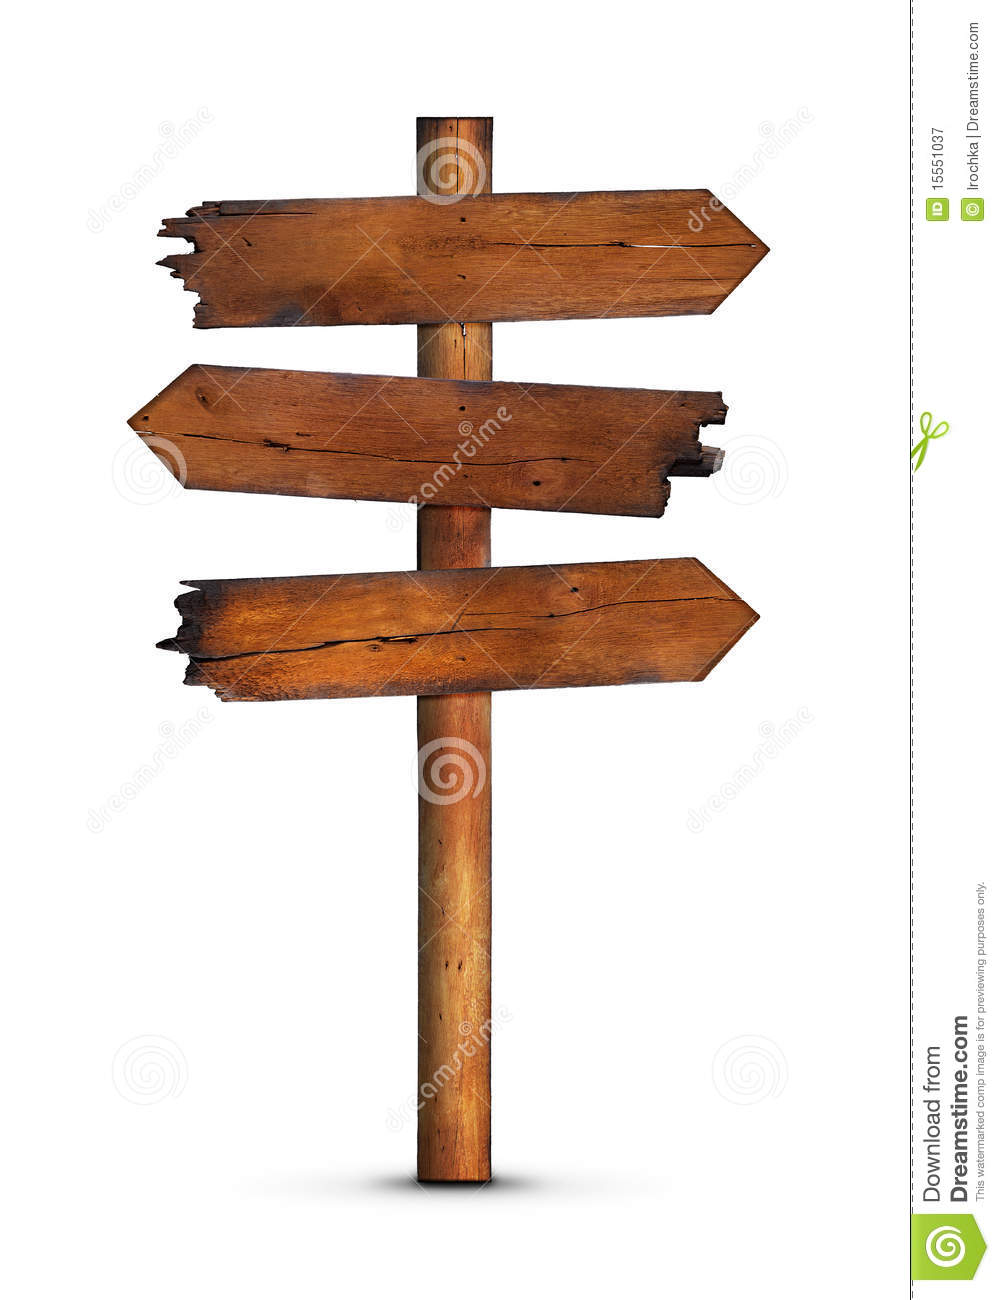 Blank Wooden Signpost Royalty Free Stock Photography - Image: 15551037